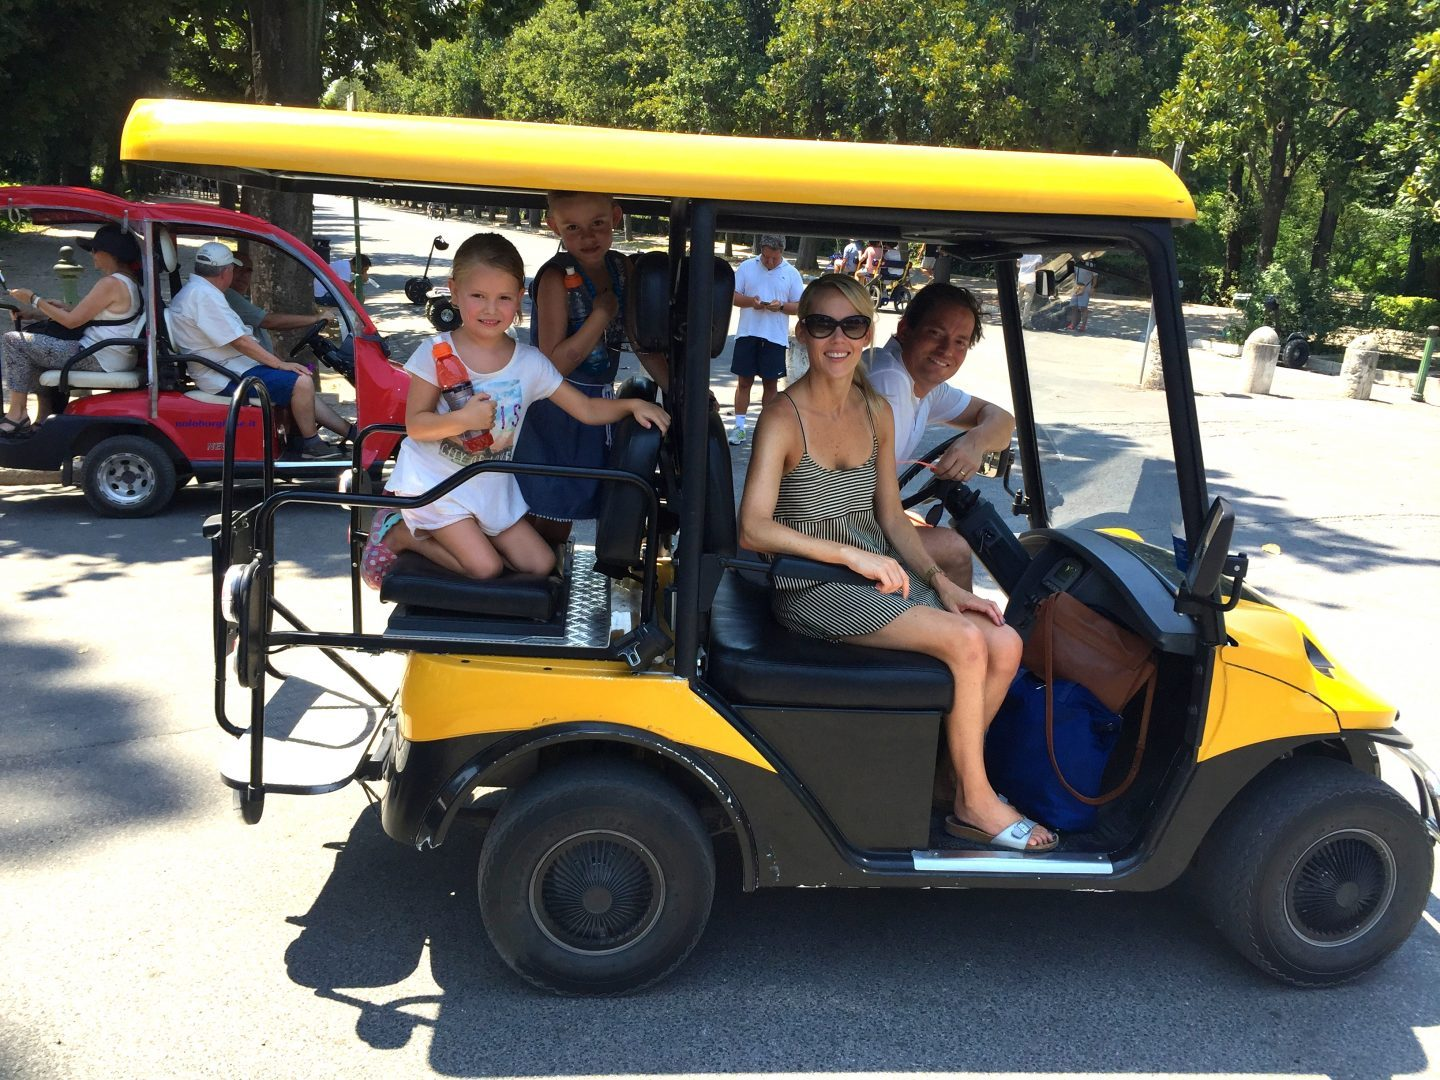 Cruising around Villa Borghese in Rome in golf carts.